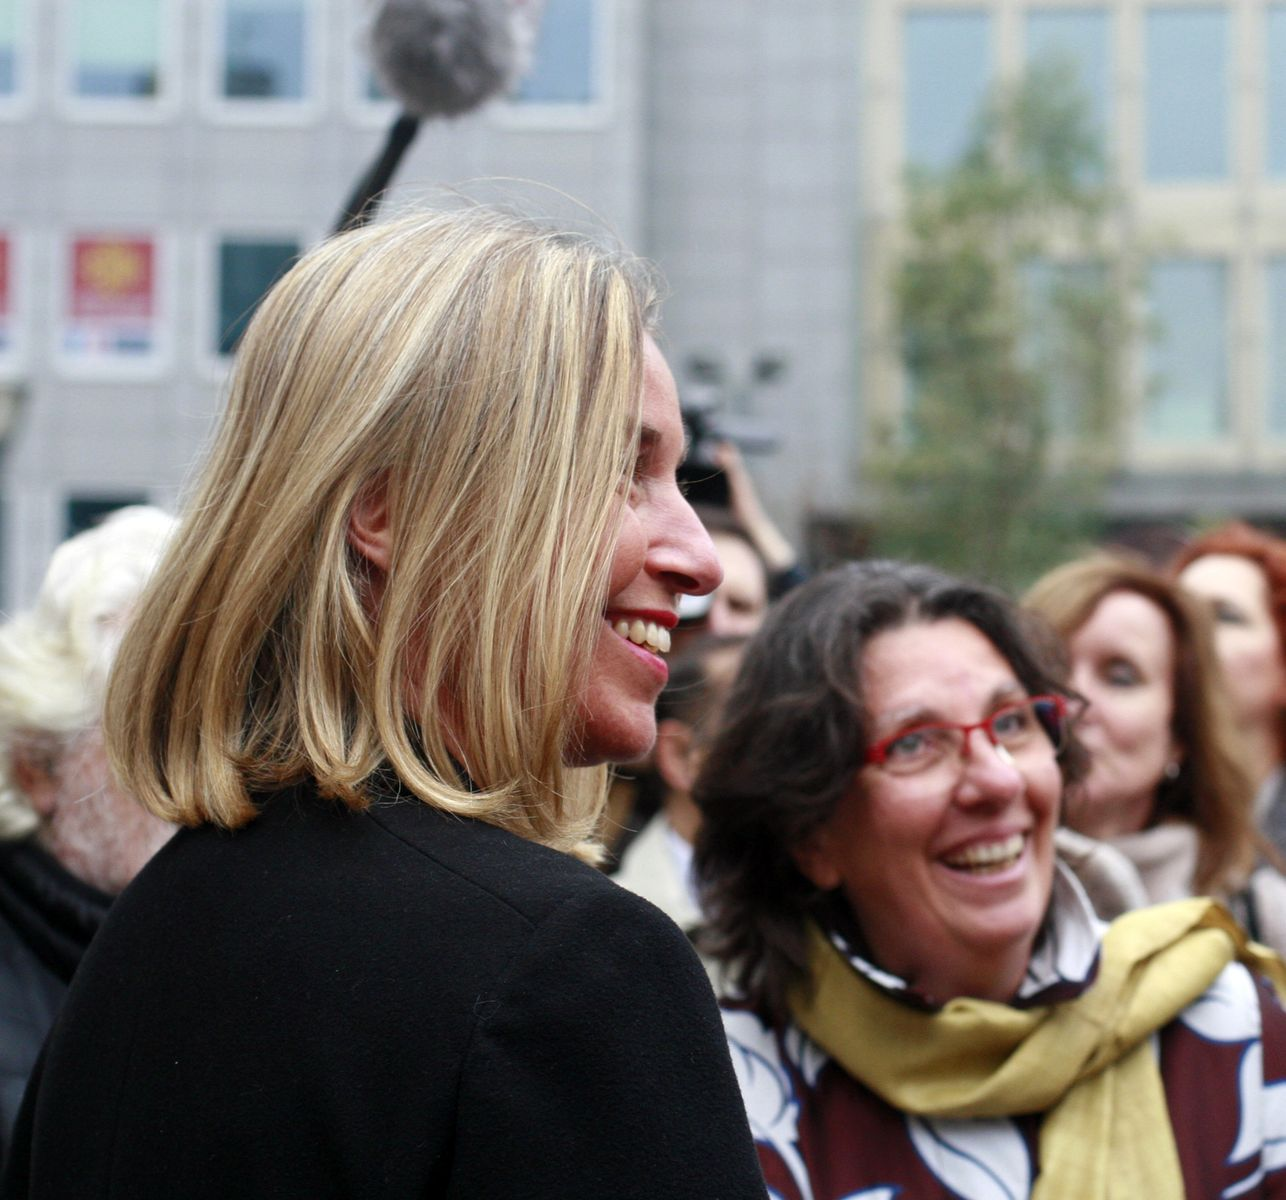 UN in Brussels Director Barbara Pesce-Monteiro and EU foreign policy chief Federica Mogherini